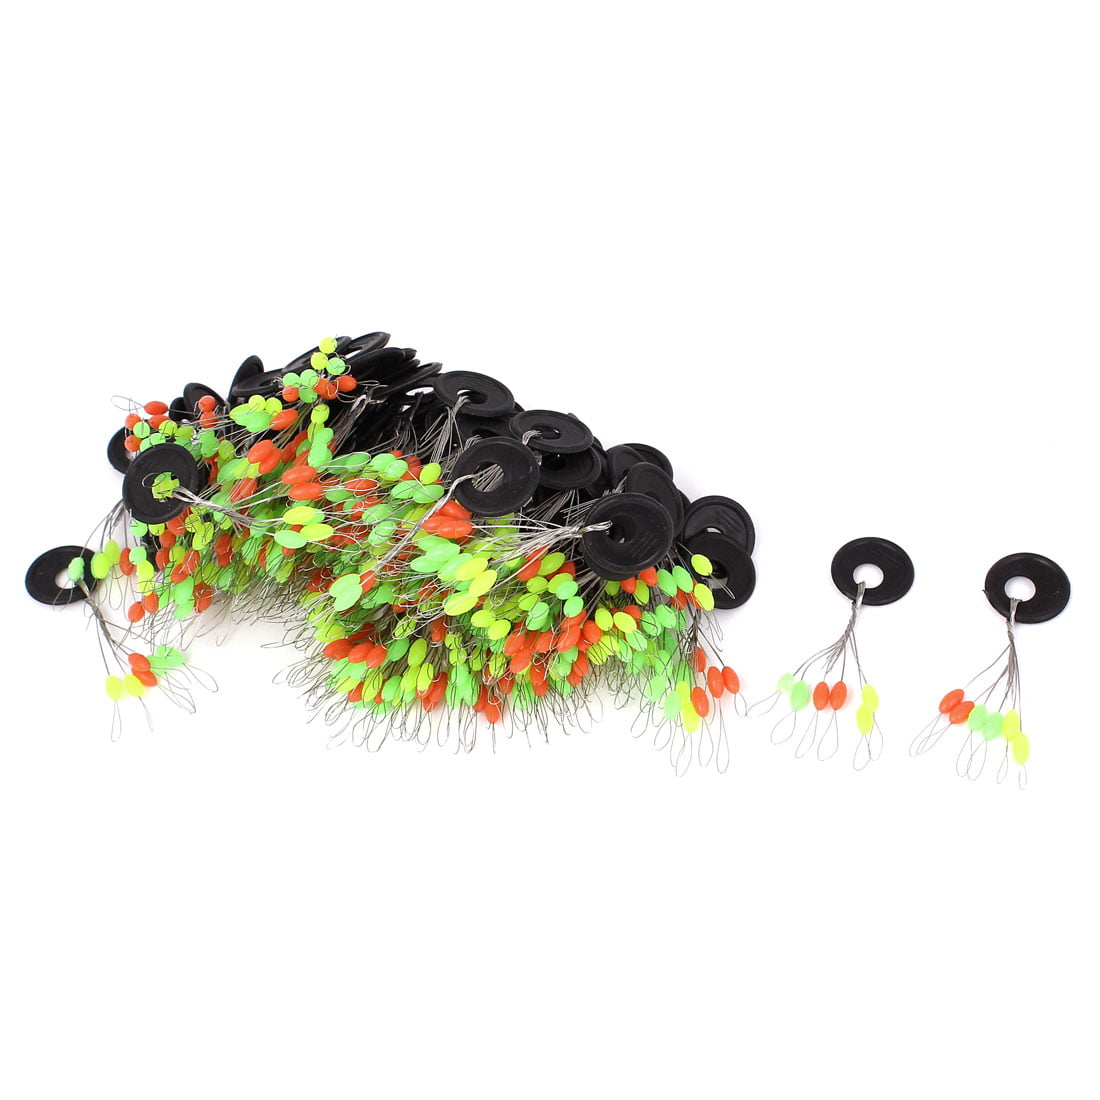 Unique Bargains 6 in 1 Multicolor Fishing Floaters Bobbers 5mm Long 100 Pcs by